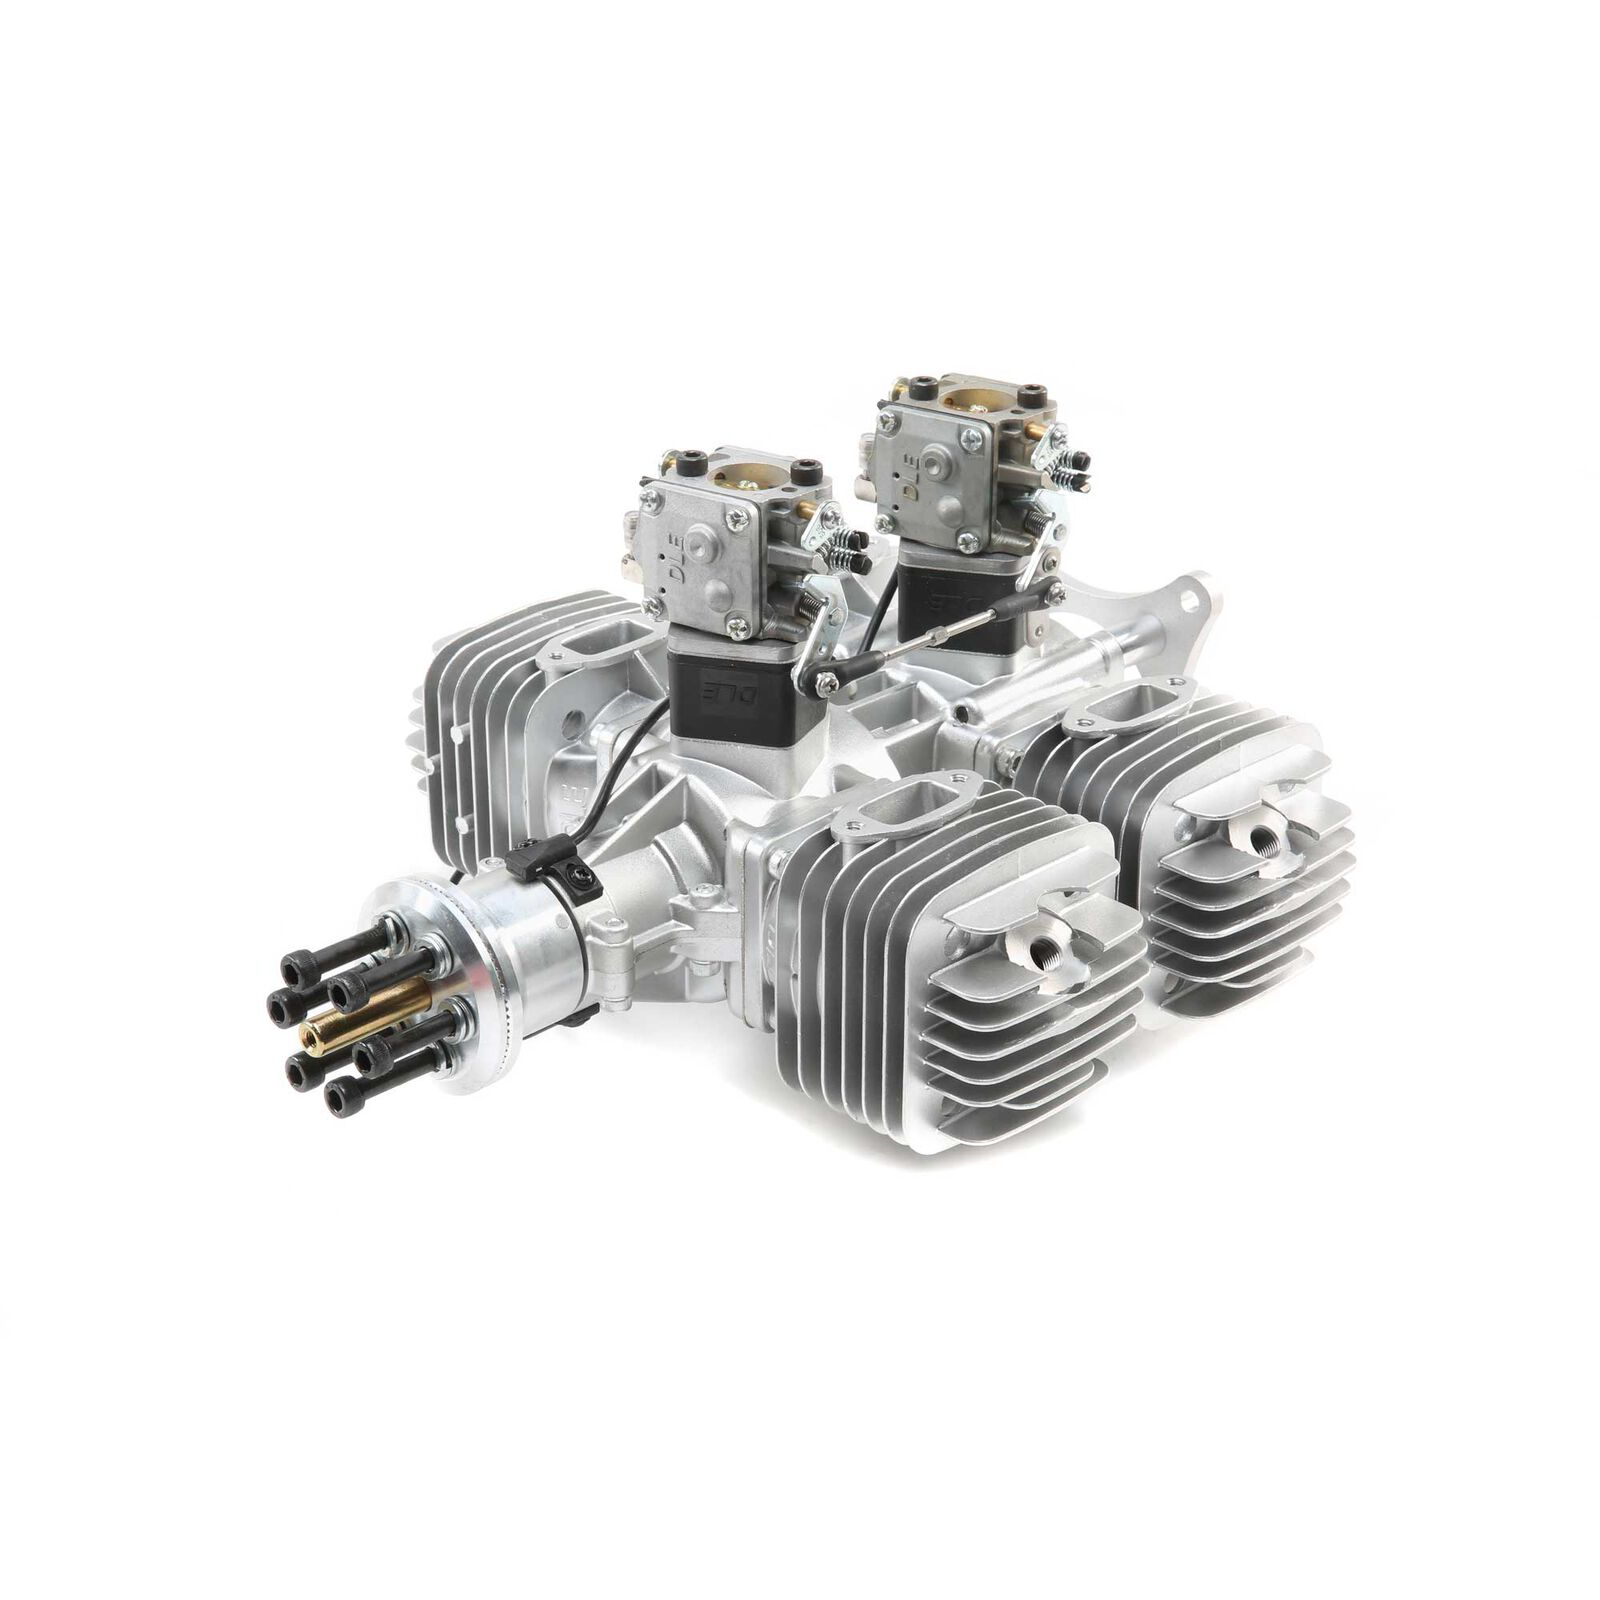 DLE-222 222cc 4-Cyl Gas Engine with Electronic Ignition and Mufflers